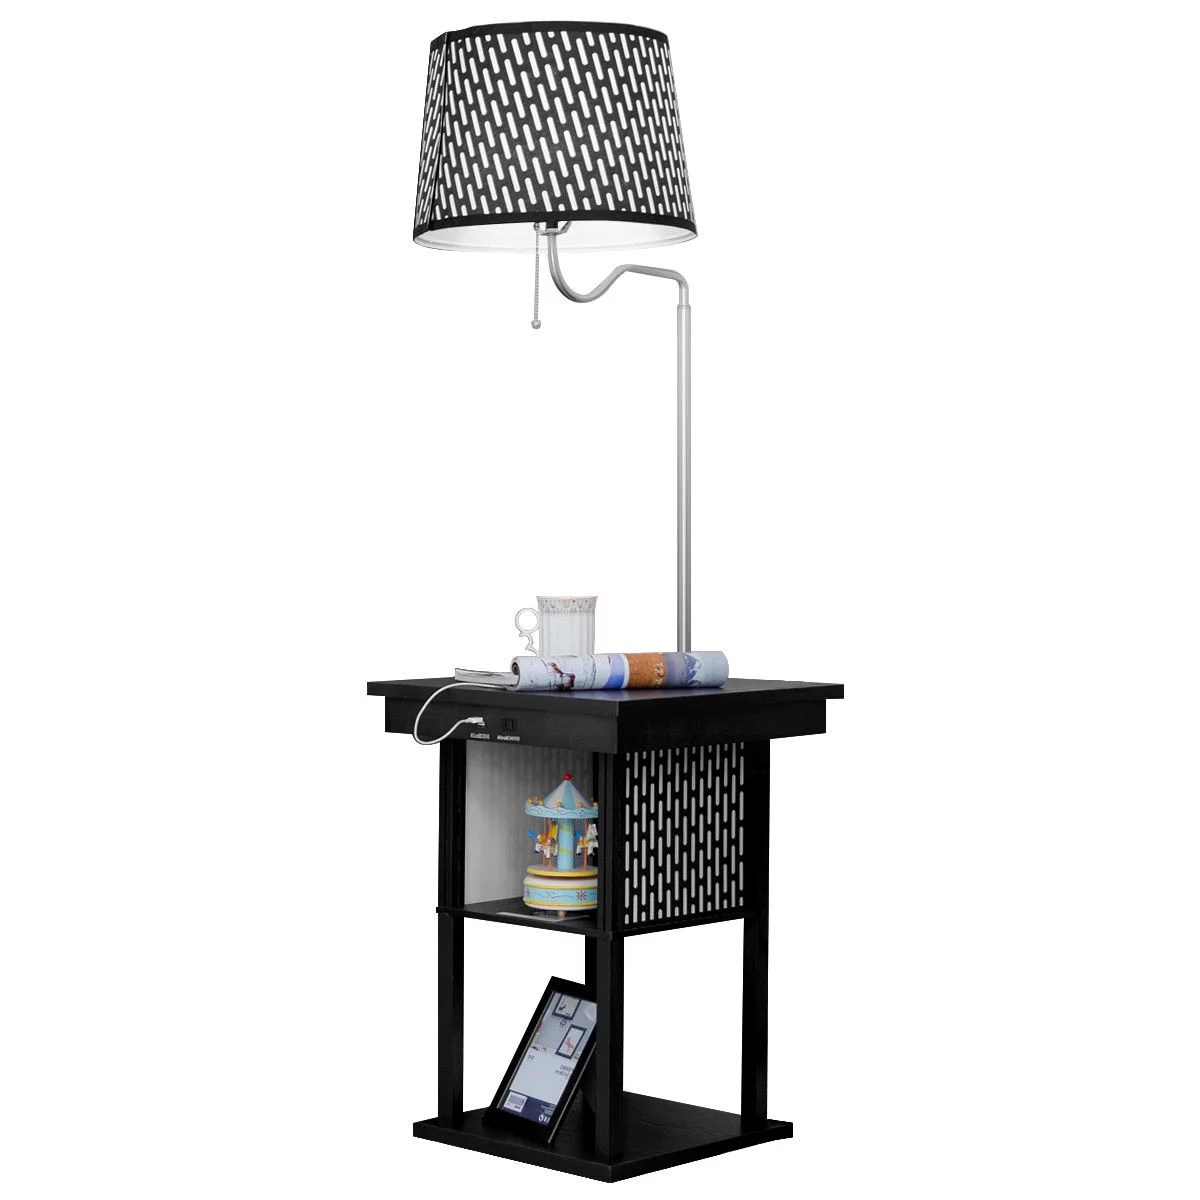 lamp living room blue walls dark furniture gymax floor swing arm built in end table w shade 2 qty